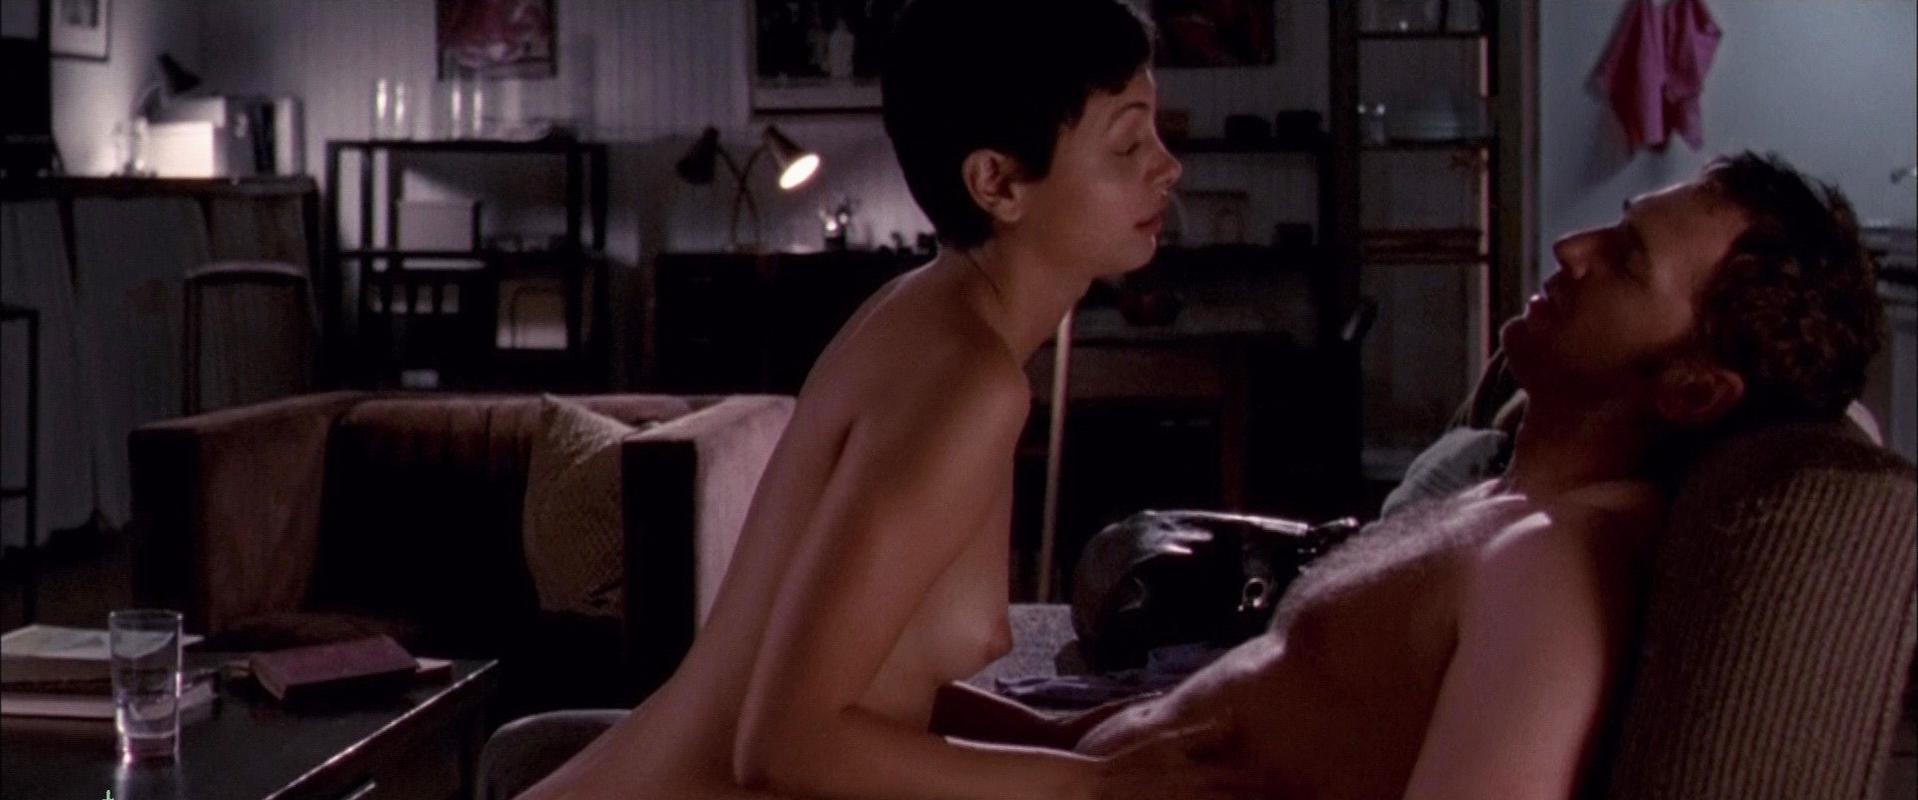 Morena Baccarin Nude Video